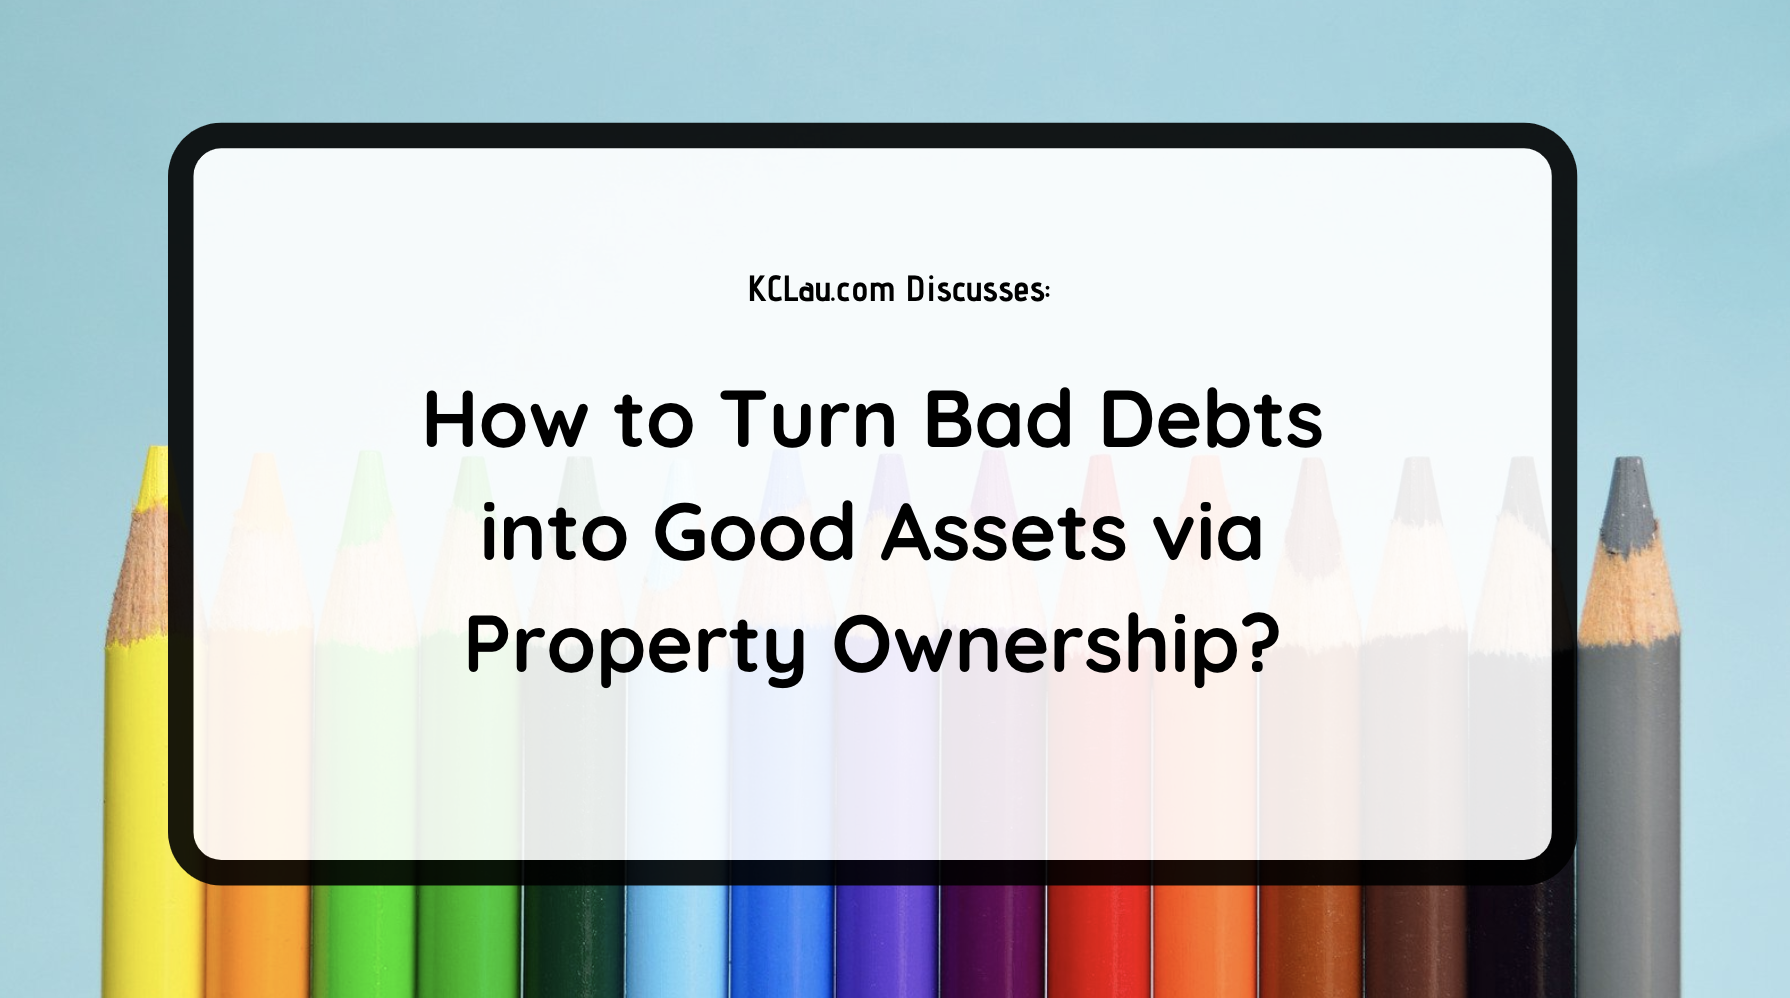 How to Turn Bad Debts into Good Assets through Property Ownership?